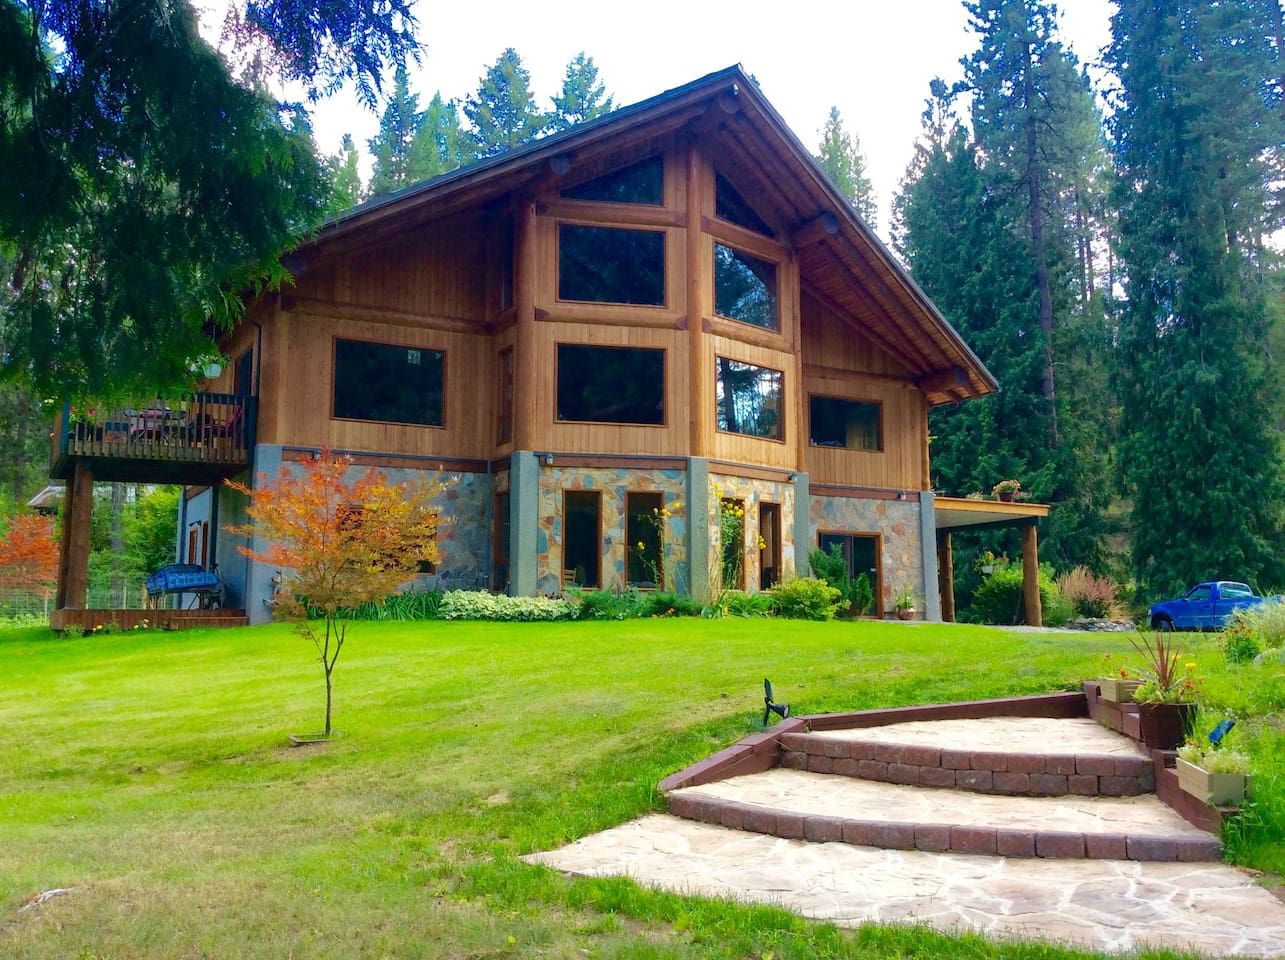 Our home on the bank of the Kettle River, 5 km from Christina Lake.